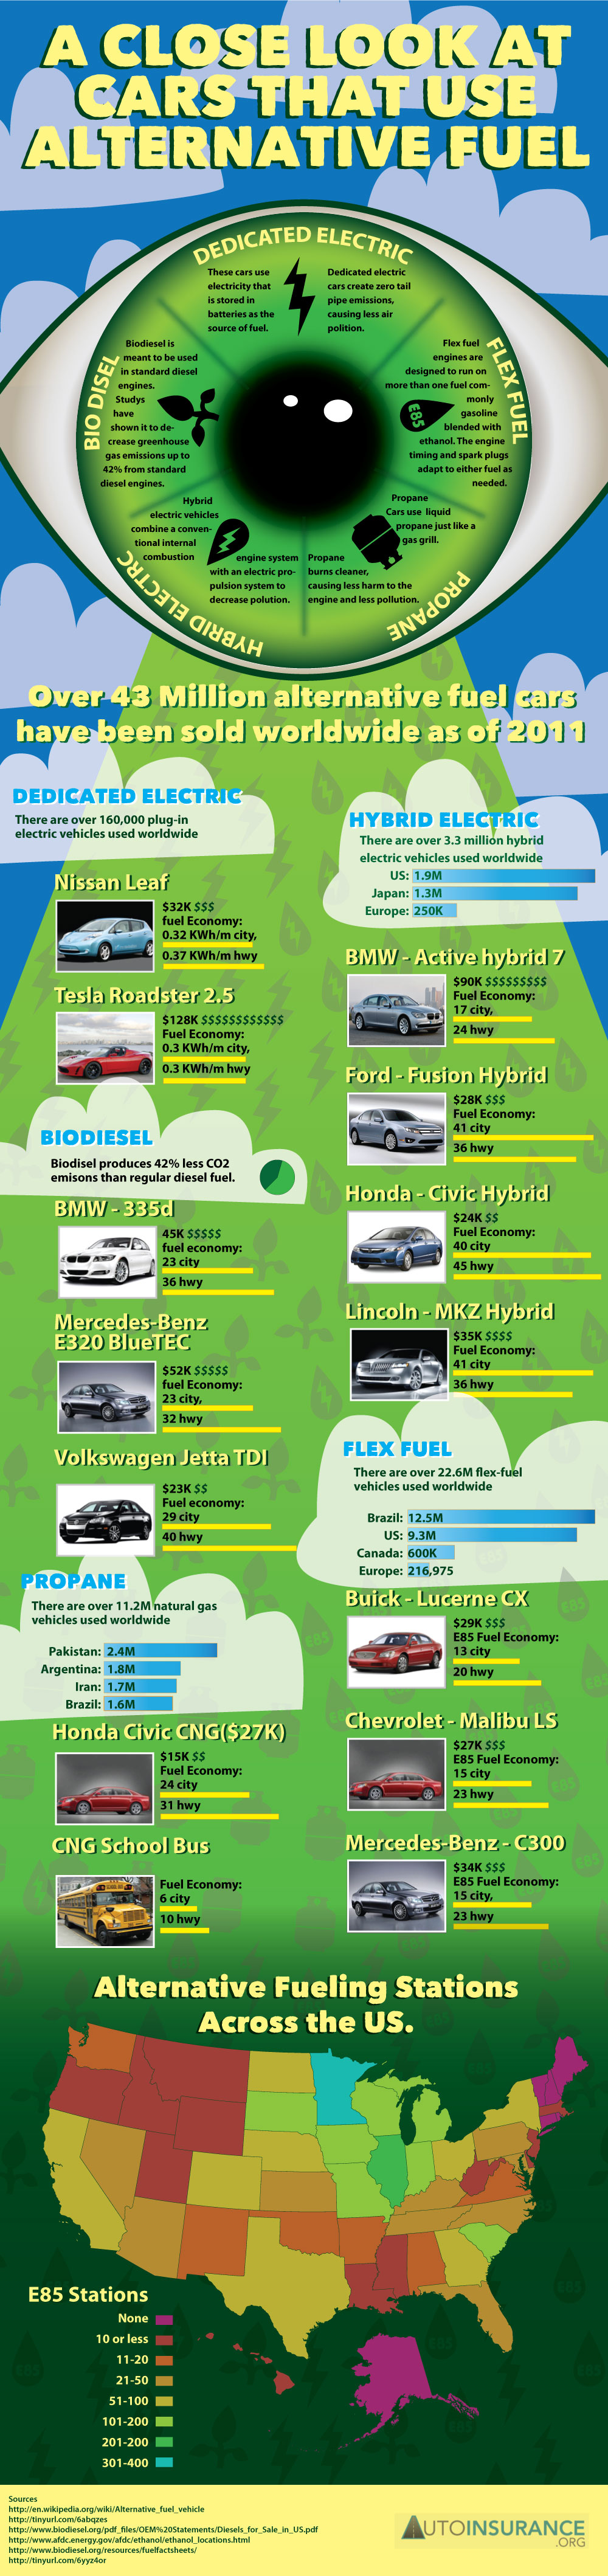 alternative fuels for cars A comparison of the top 4 technologies powering alternative fuel cars: biodiesel, ethanol, hybrid, and hydrogen.